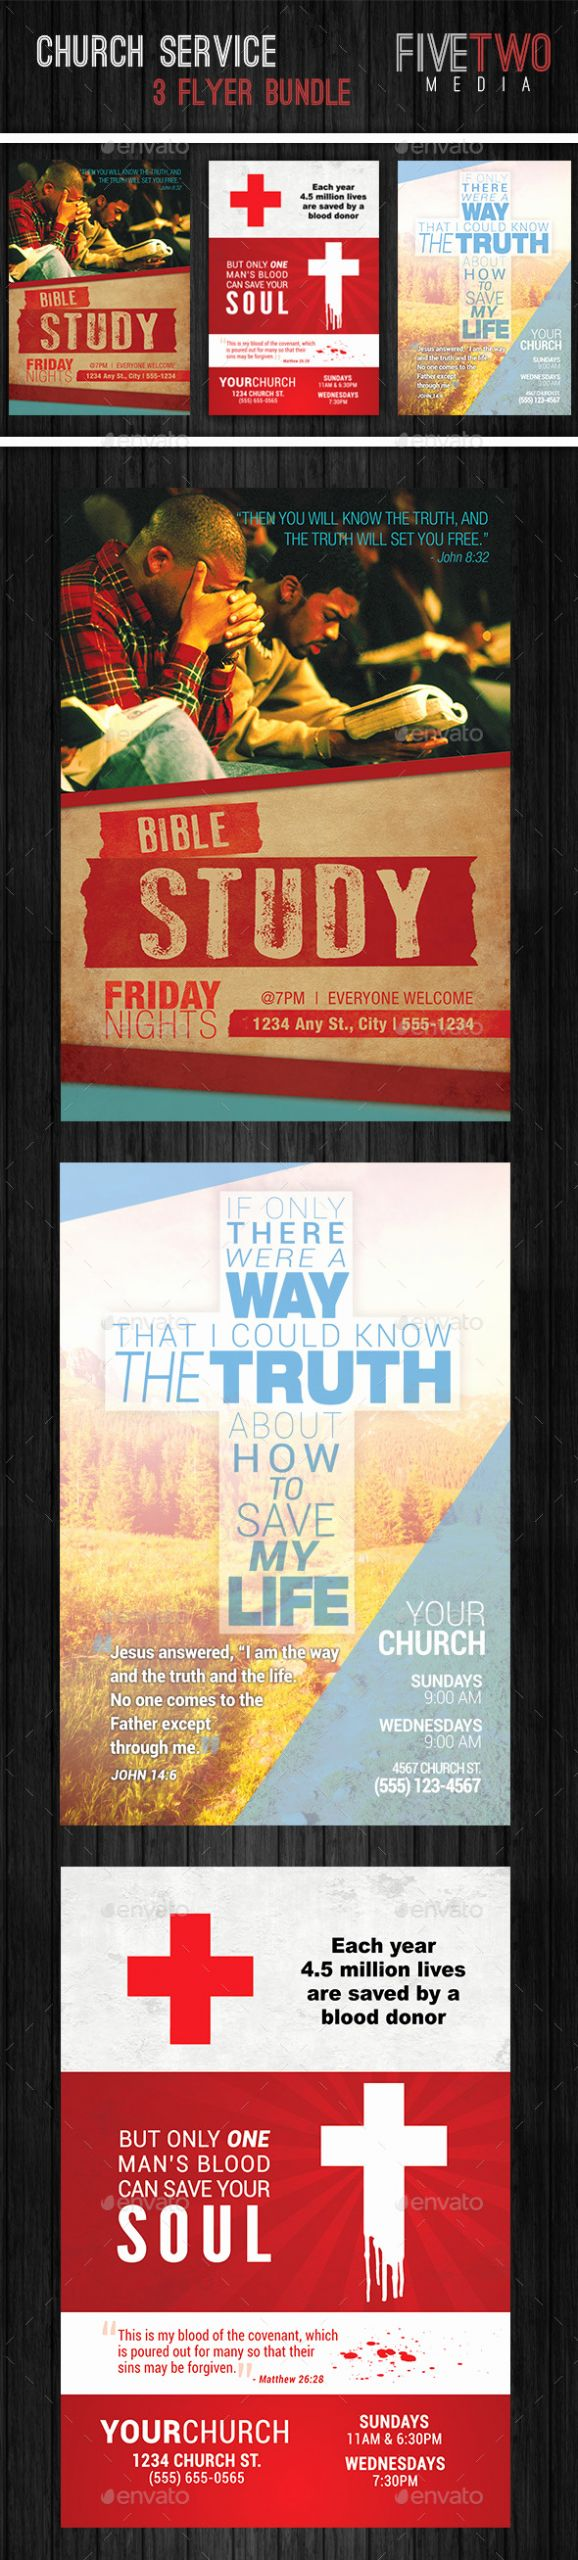 Bible Study Invitation Template New Bible Study Flyer Templates Free Tinkytyler Stock